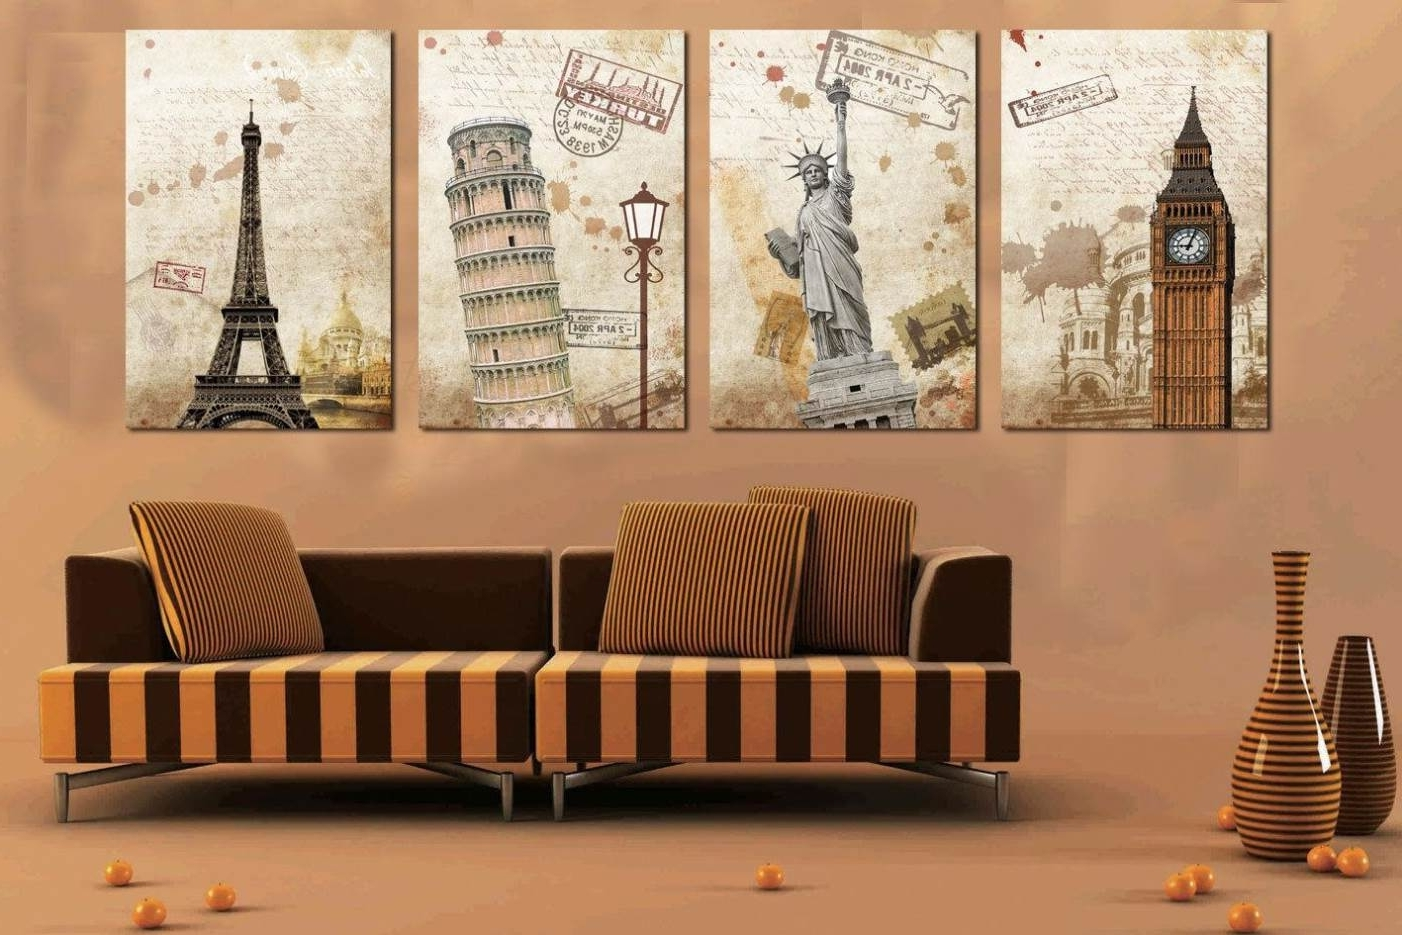 Long Canvas Wall Art Inside Fashionable Wall Art Canvas Is Can You Get In Suitable Looking And Appearance (View 11 of 15)